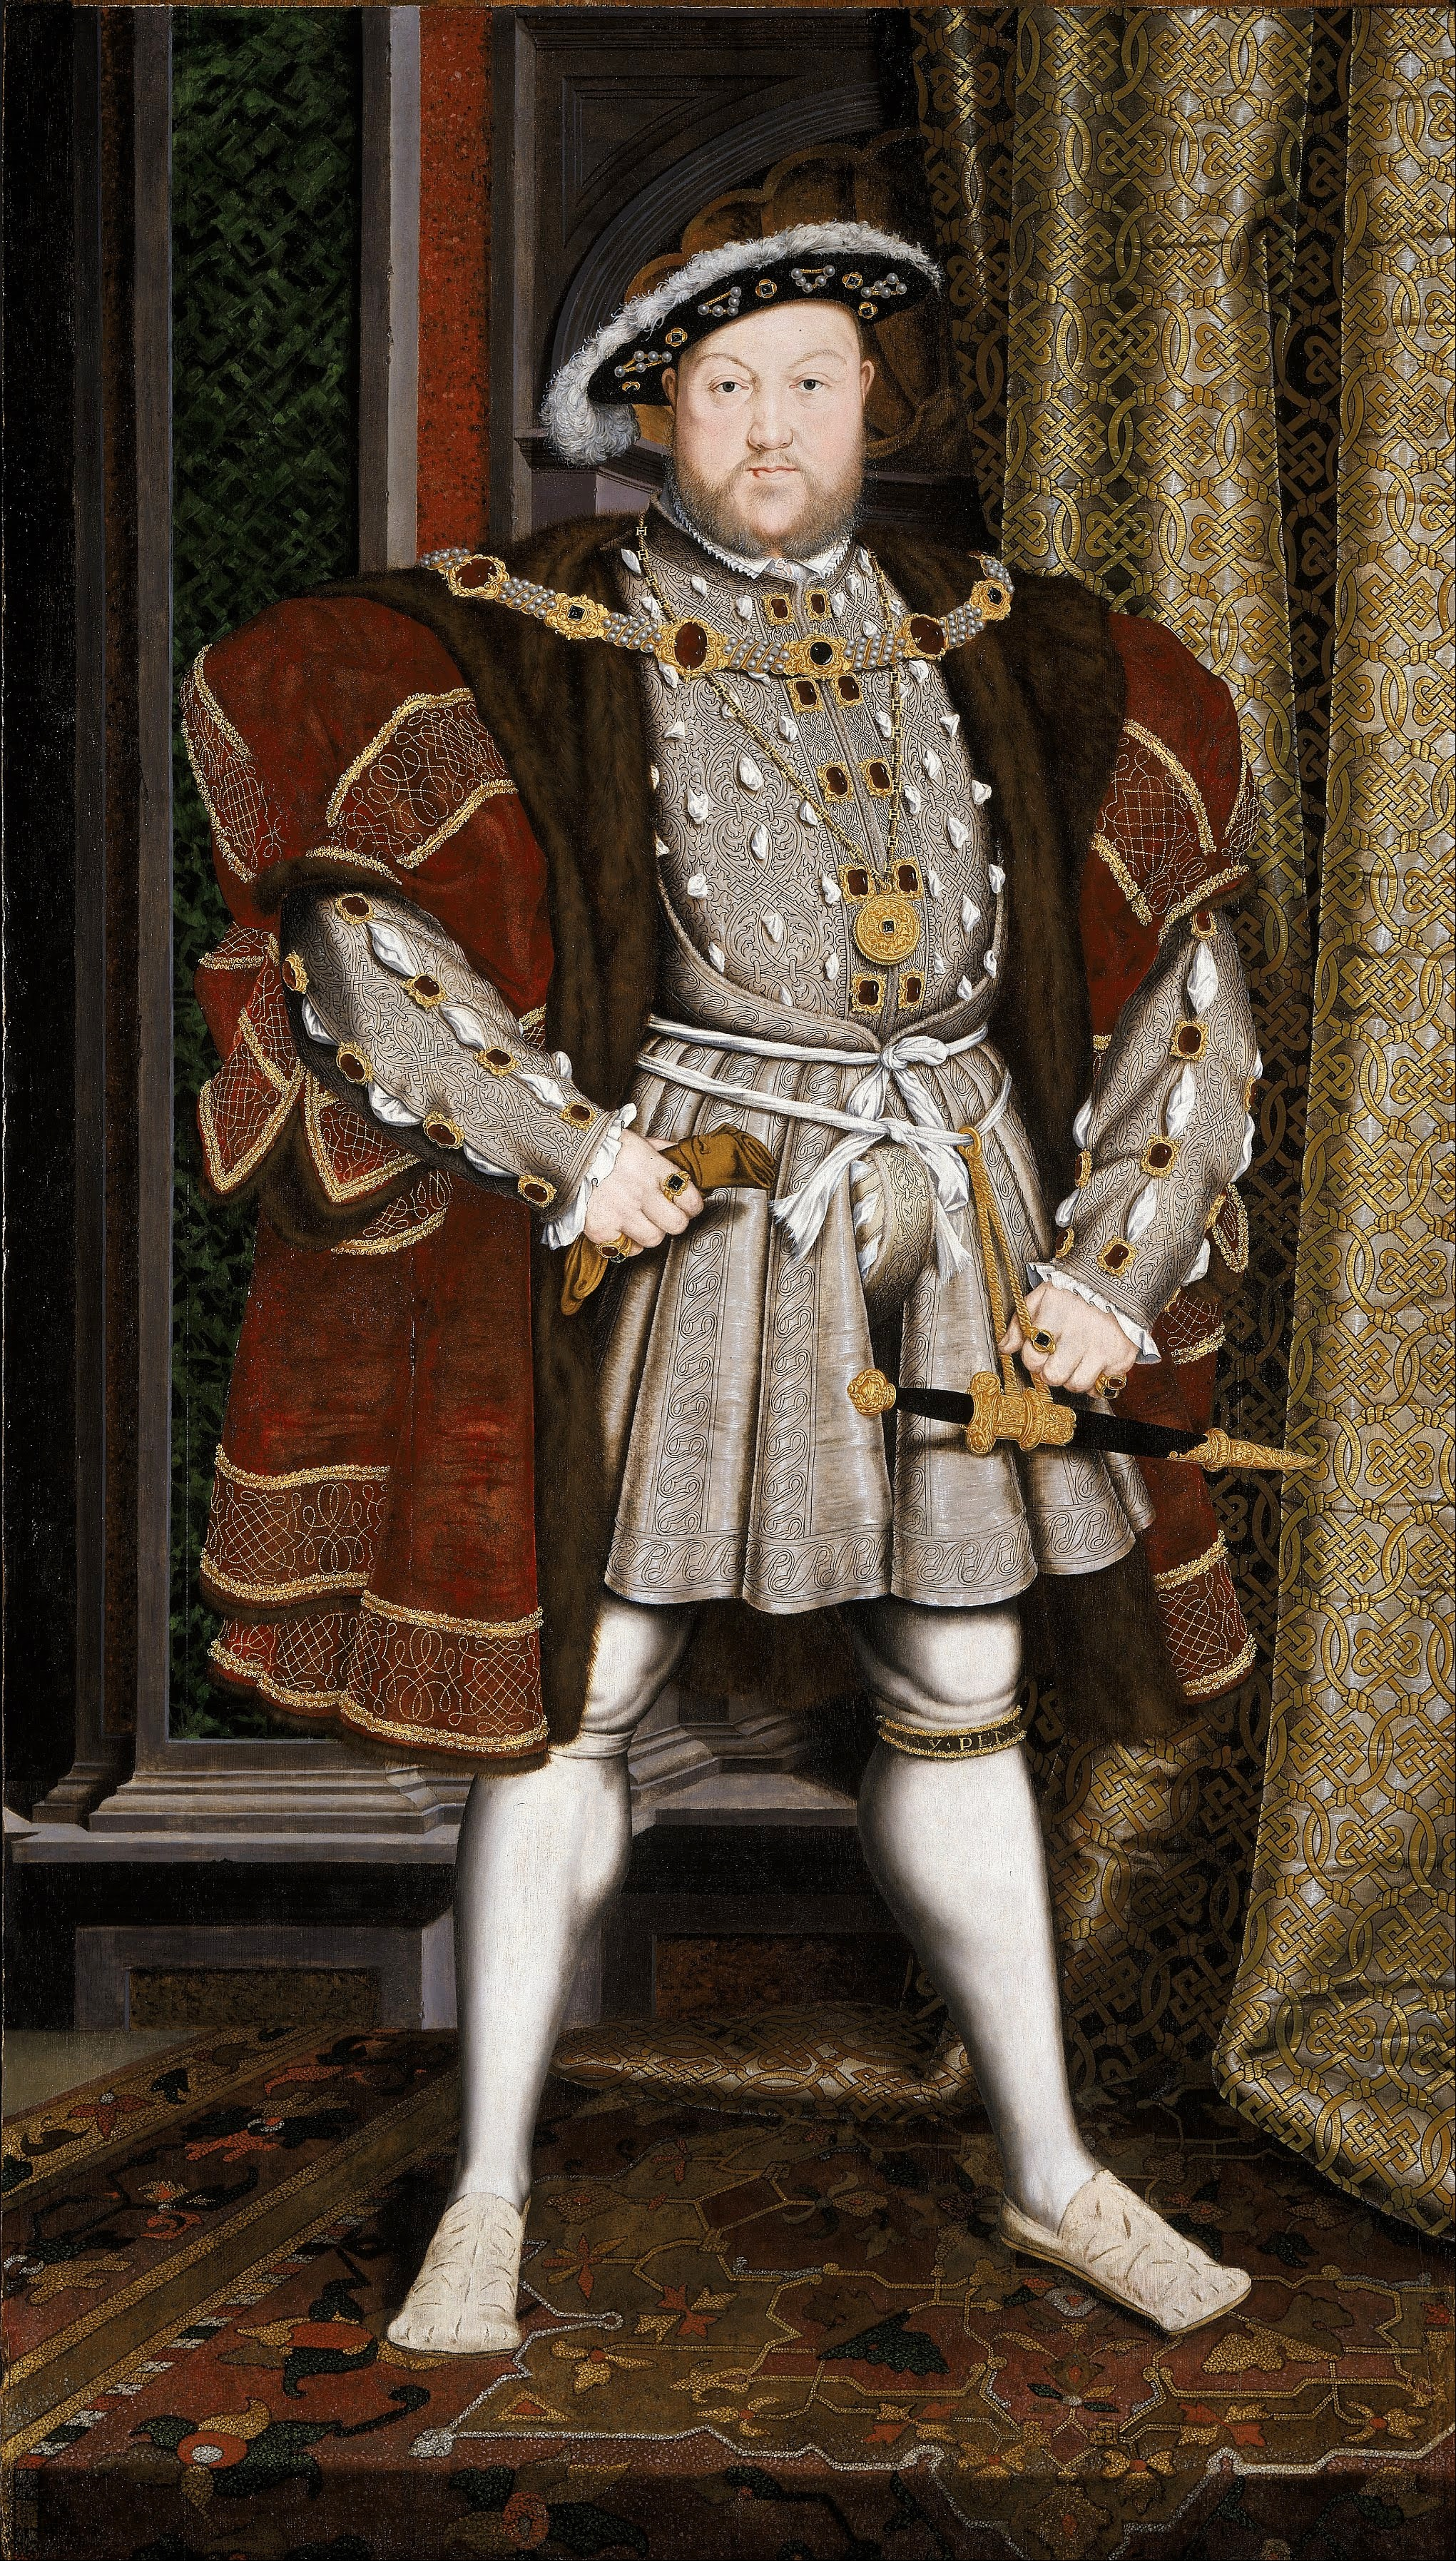 Portrait of Henry VIII of England by Hans Holbein the Younger